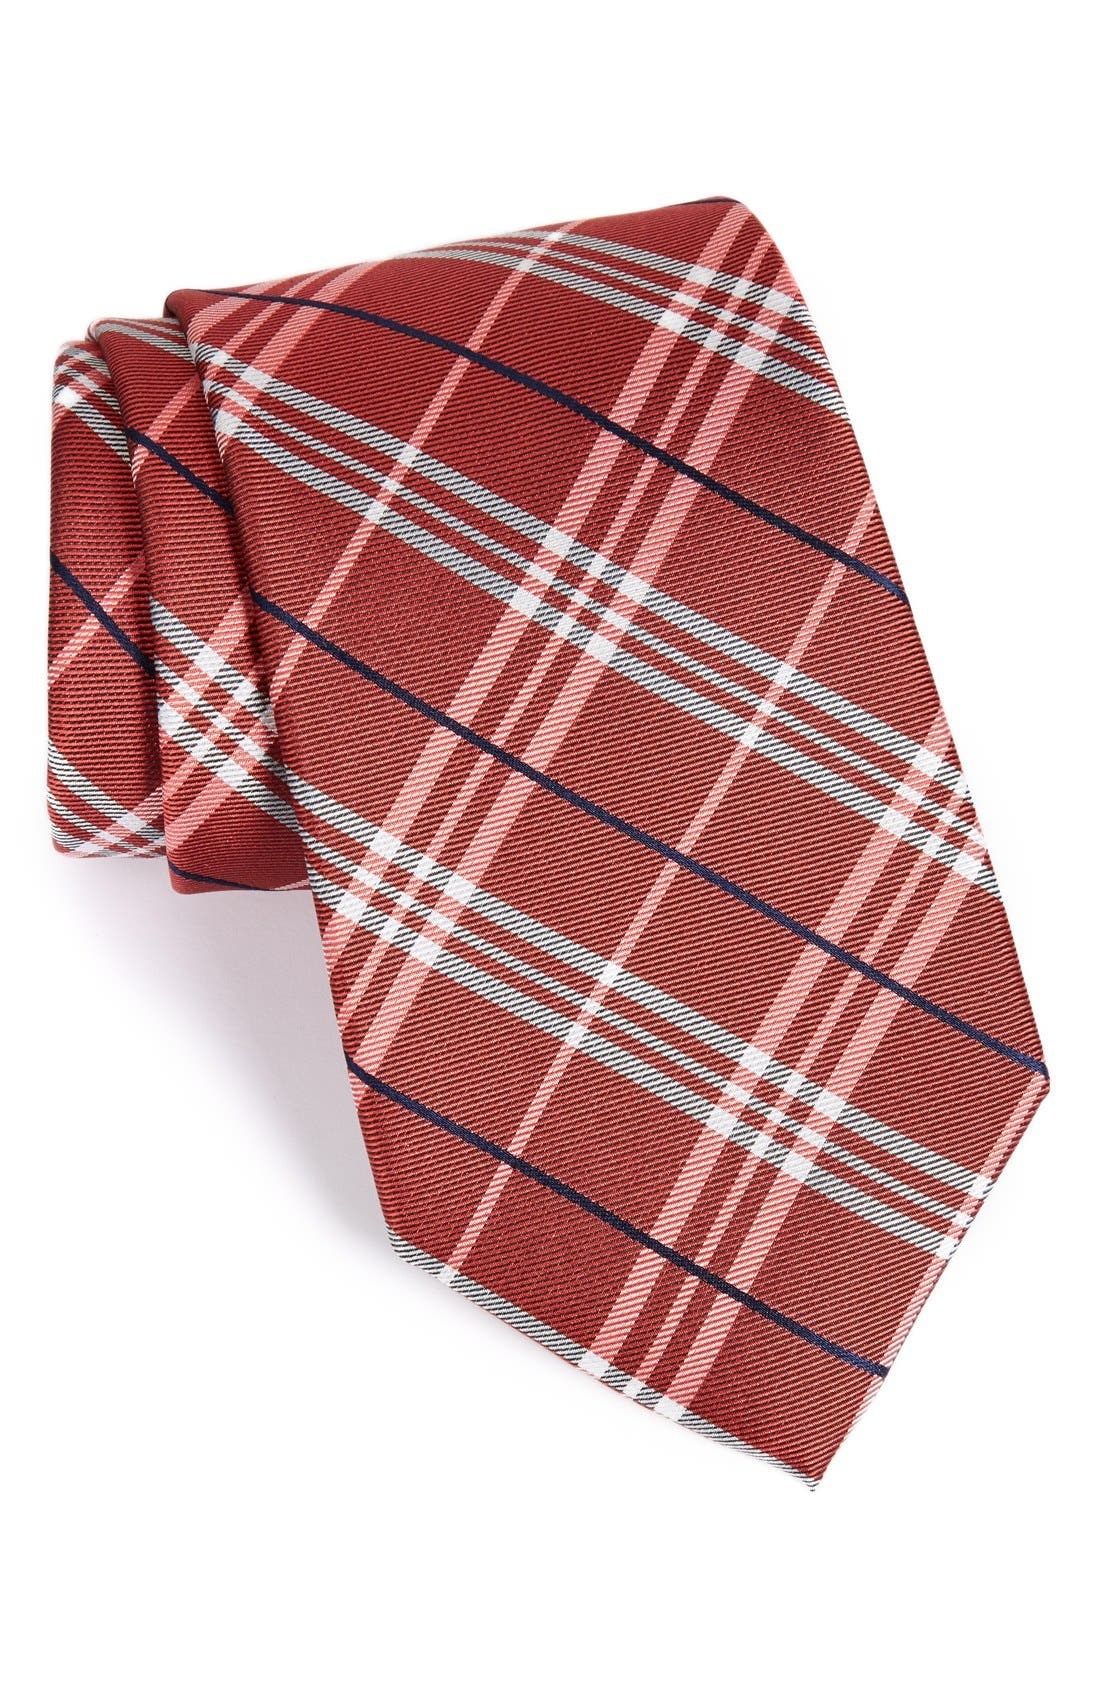 Main Image - Nordstrom Men's Shop 'Urban Plaid' Silk Tie